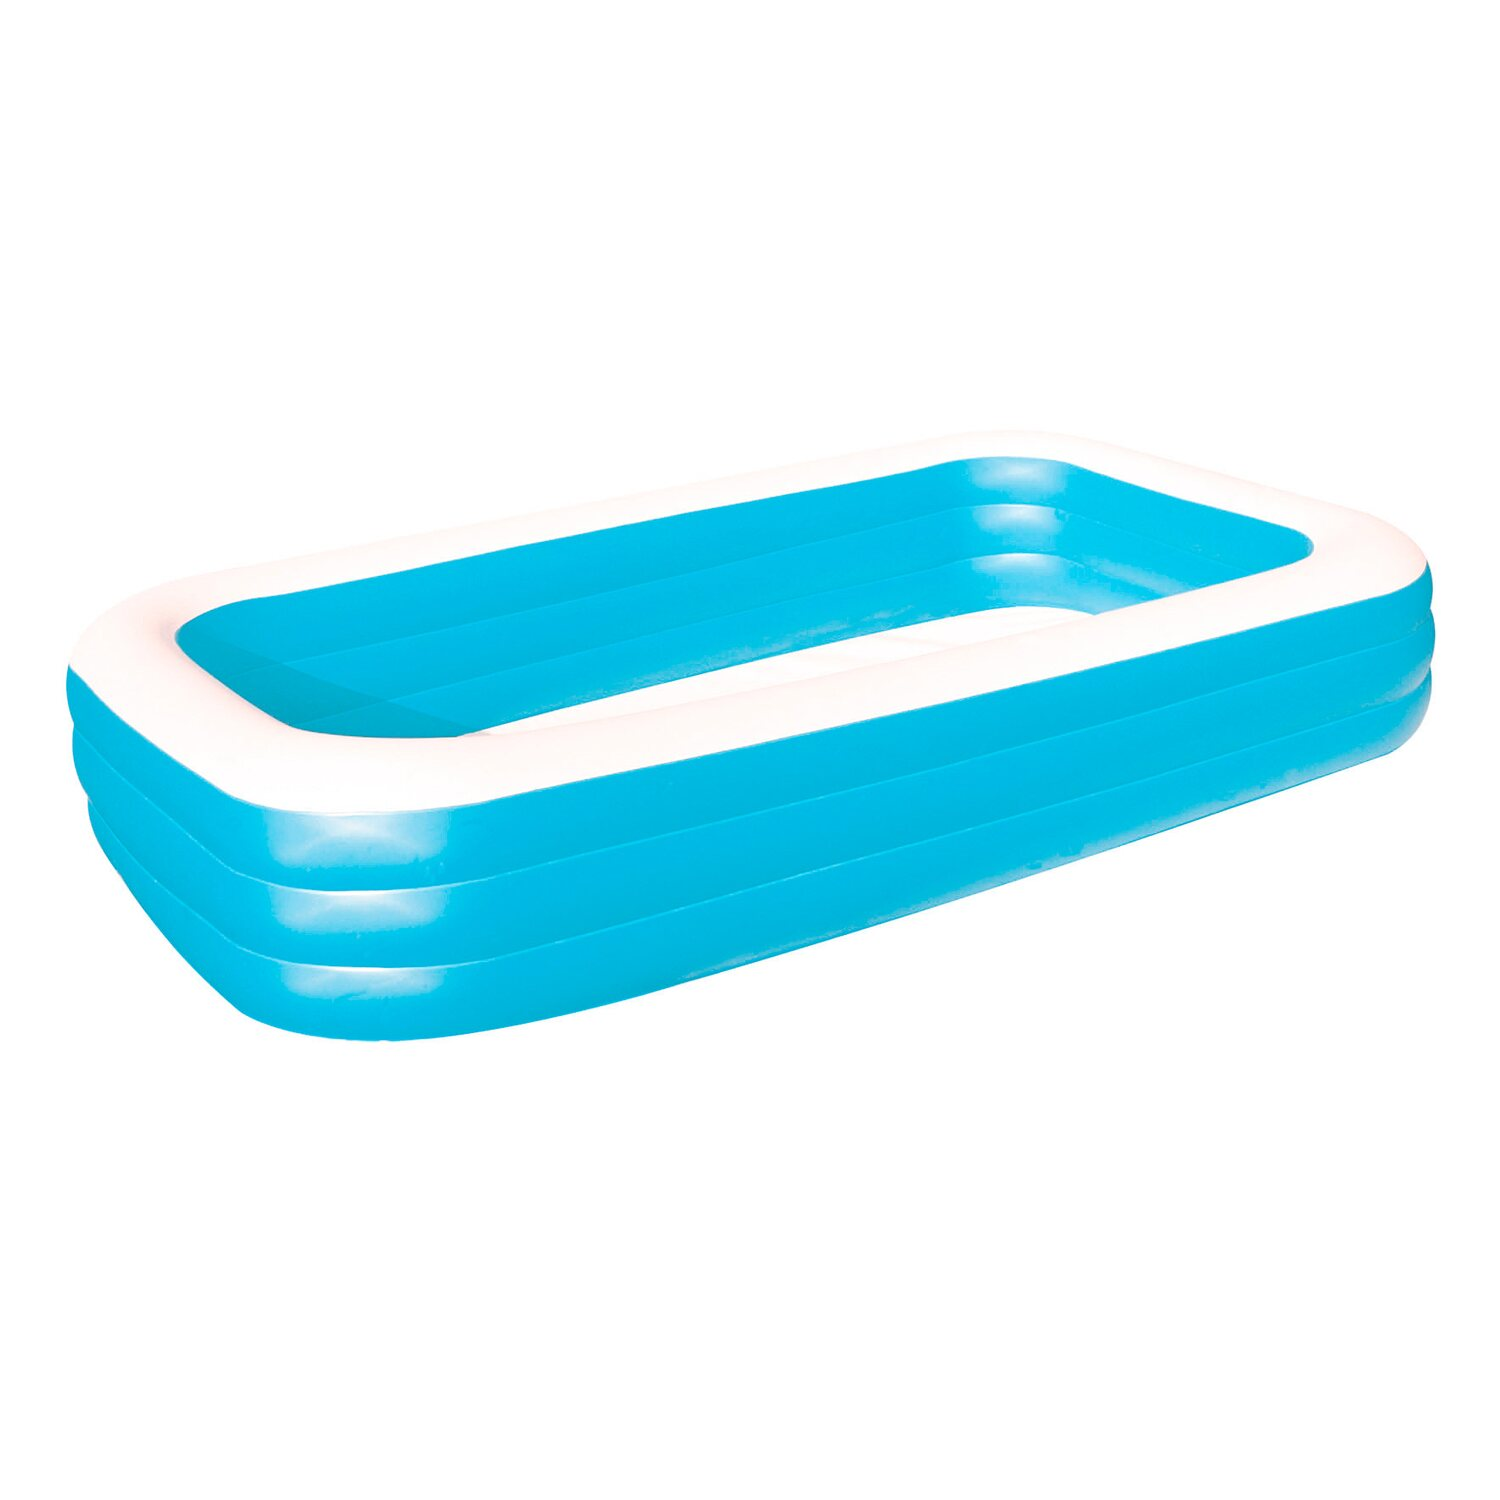 Bestway swimming pool family kaufen bei obi for Obi solarplane pool